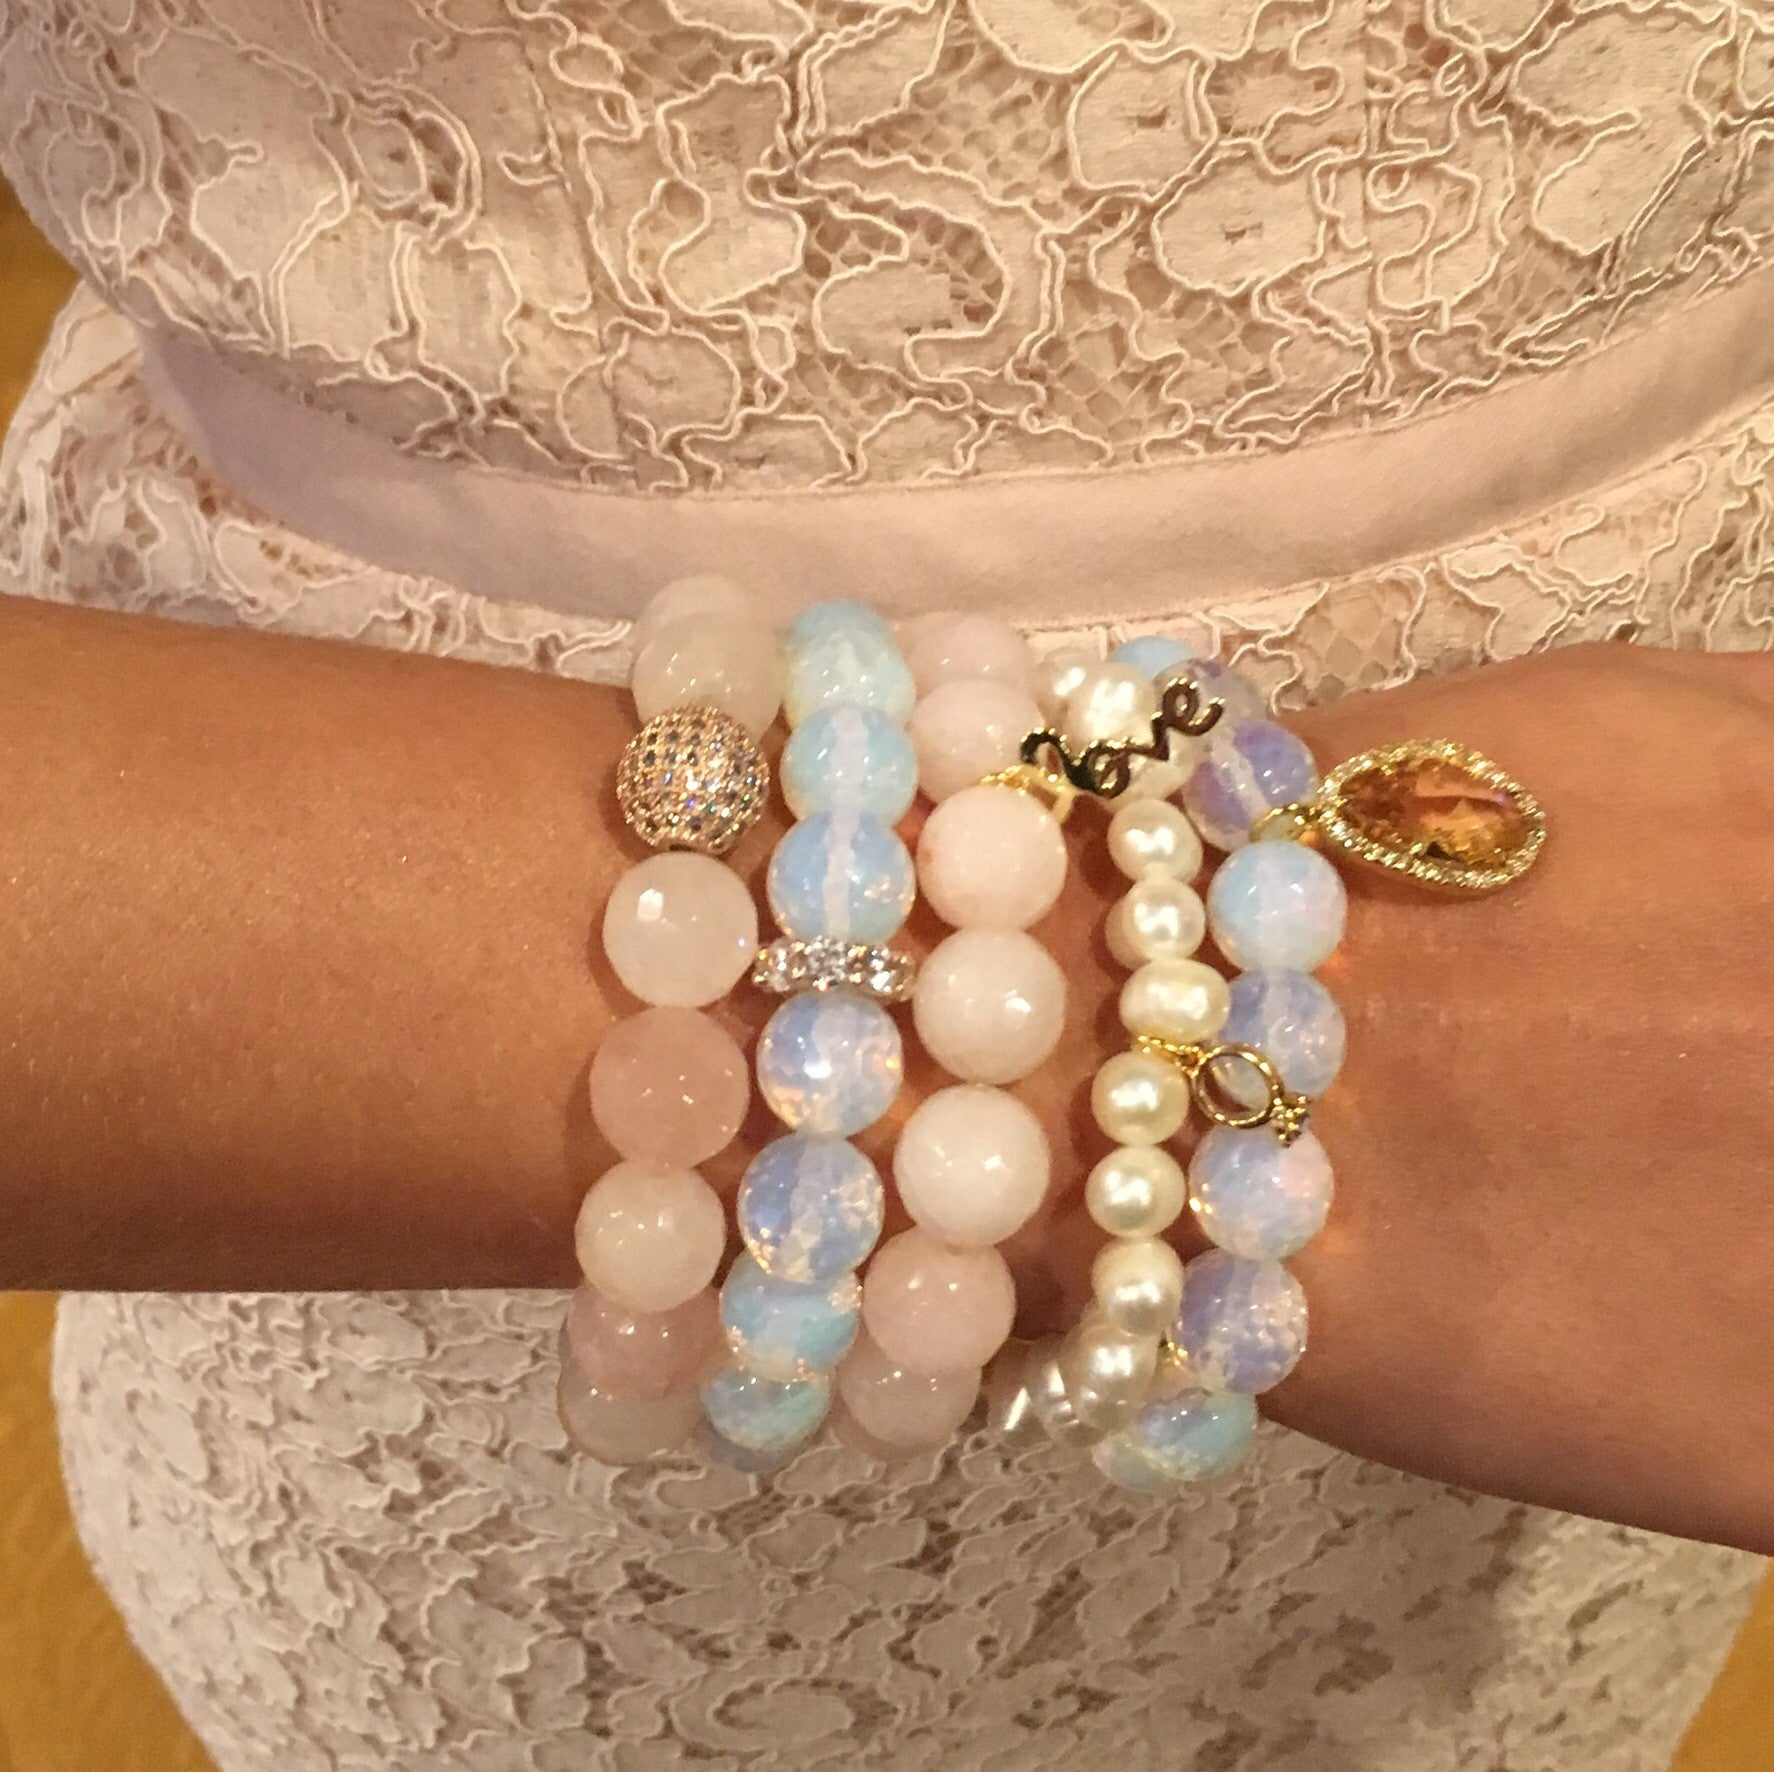 Opalite with with Pavé Rose Gold Accent - Oriana Lamarca LLC